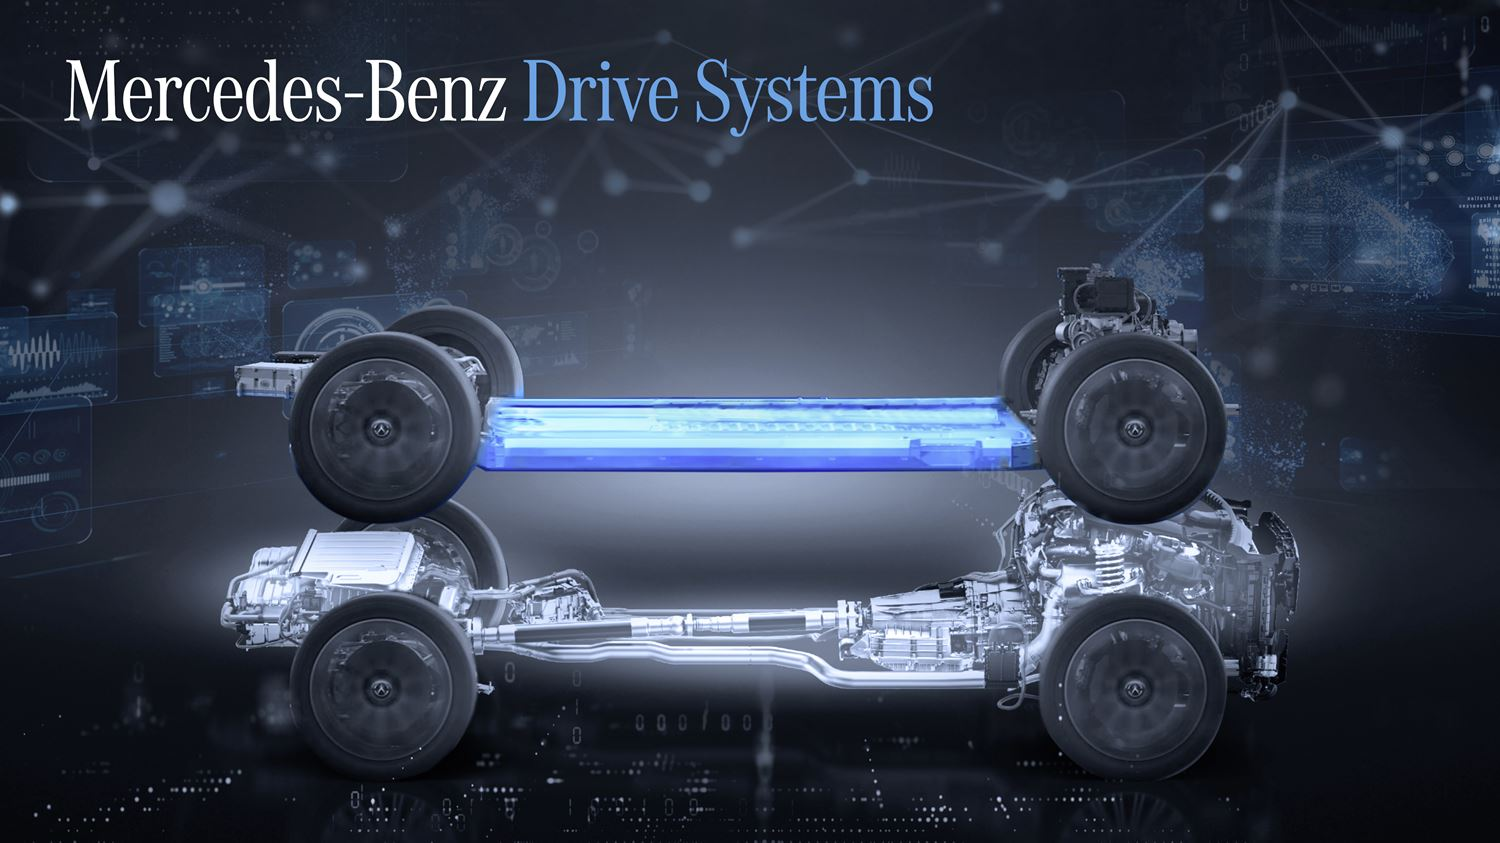 Mercedes Benz Drive Systems